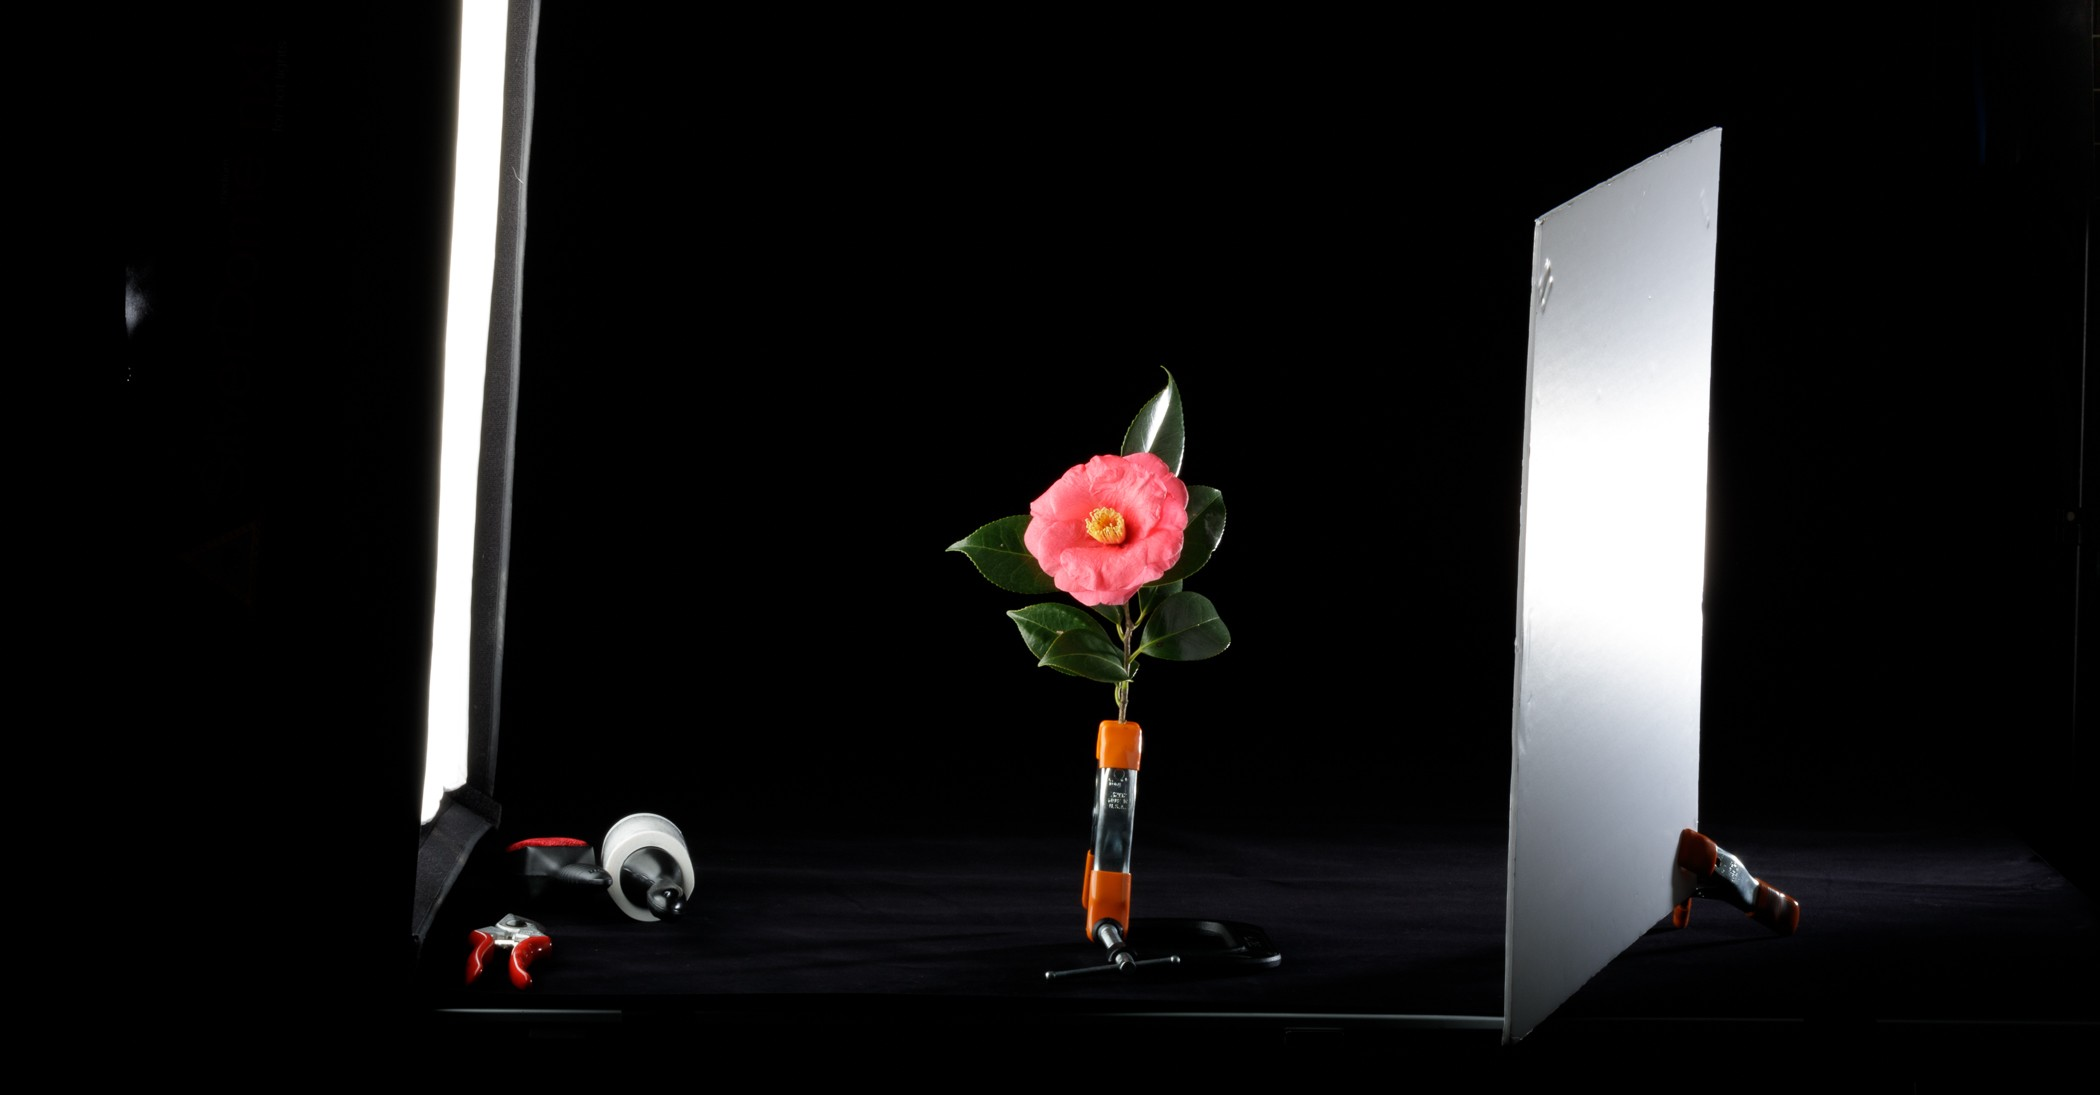 Pink camellia flower clamped in standing position between two light boxes in a dark studio